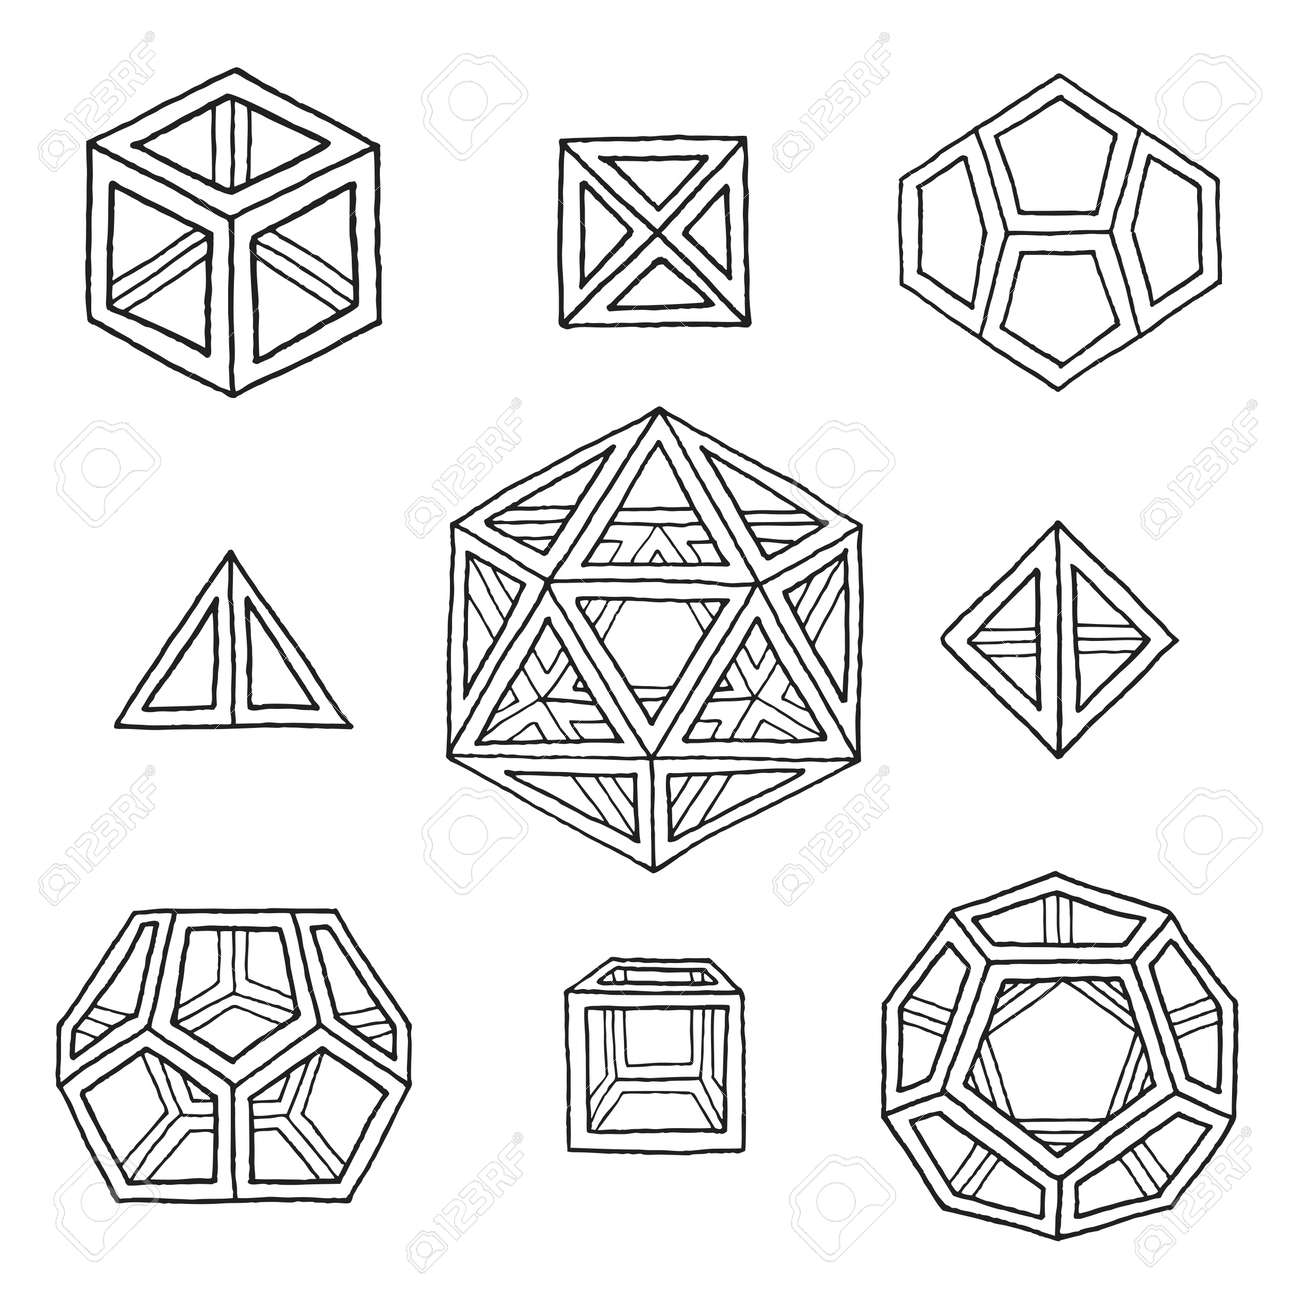 Vector Black Outline Hand Drawn Monochrome Platonic Solids